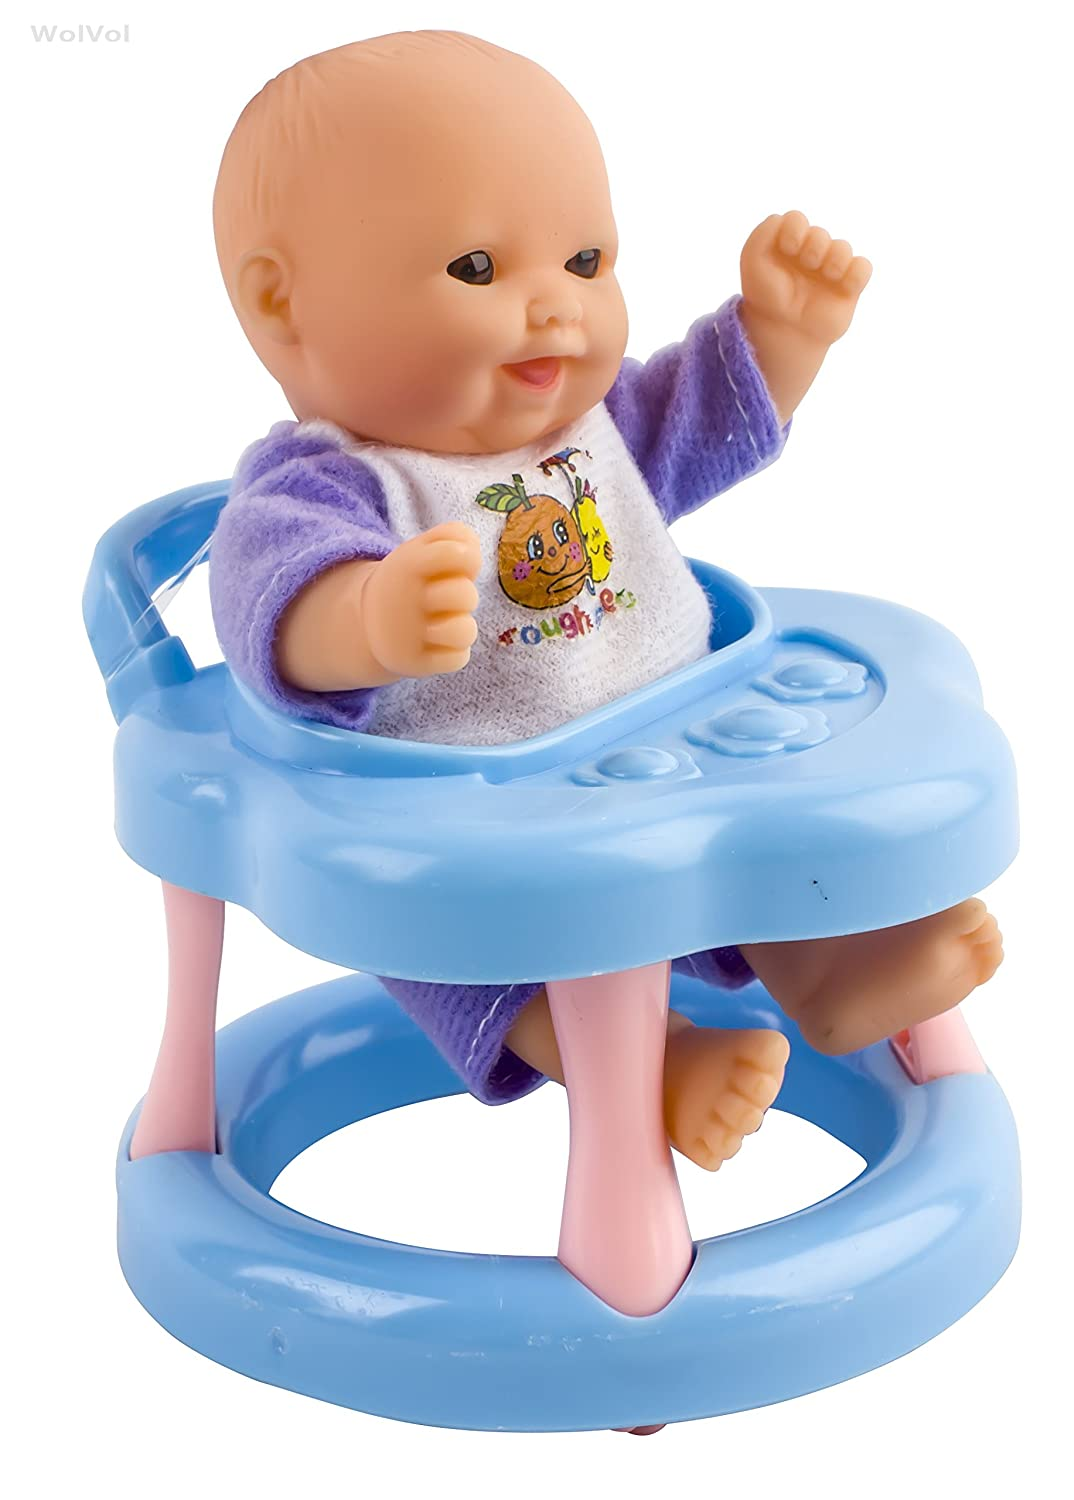 WolVol Set of 6 Mini Dolls for Girls with Cradle, High Chair, Walker ...